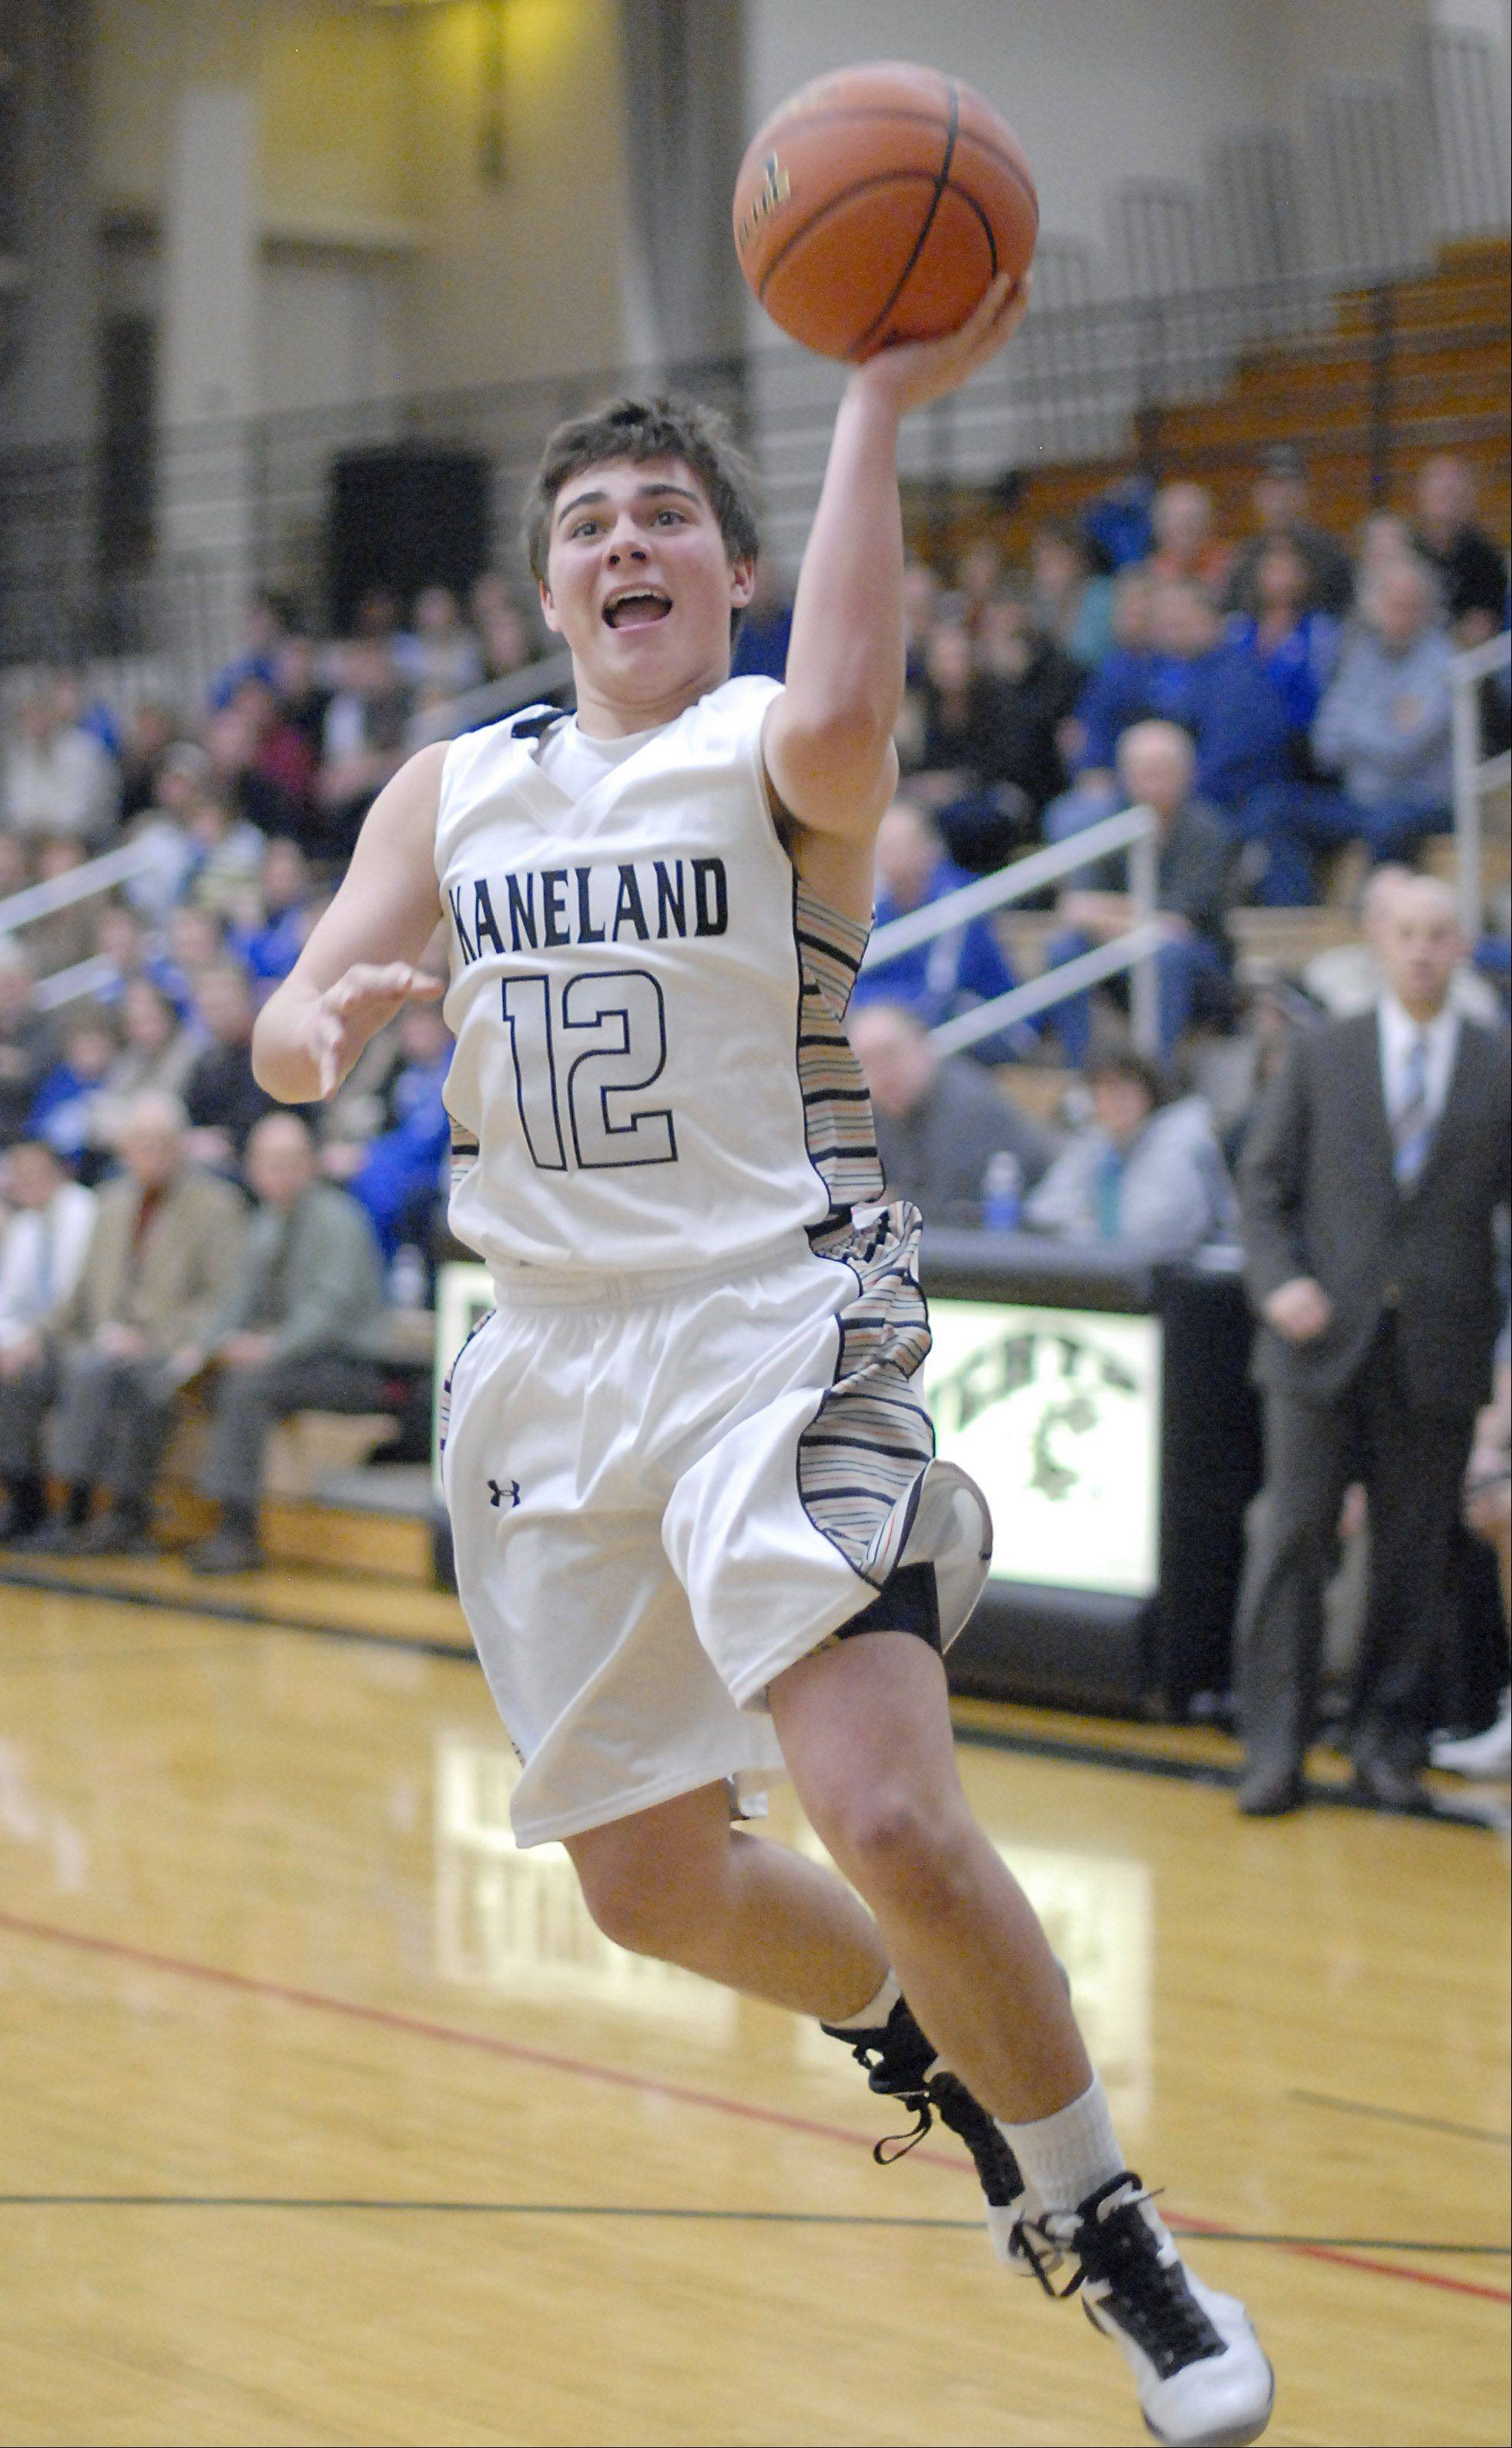 Kaneland's Connor Fedderly sinks a shot in the third quarter vs. Hinckley-Big Rock on Tuesday, December 11.